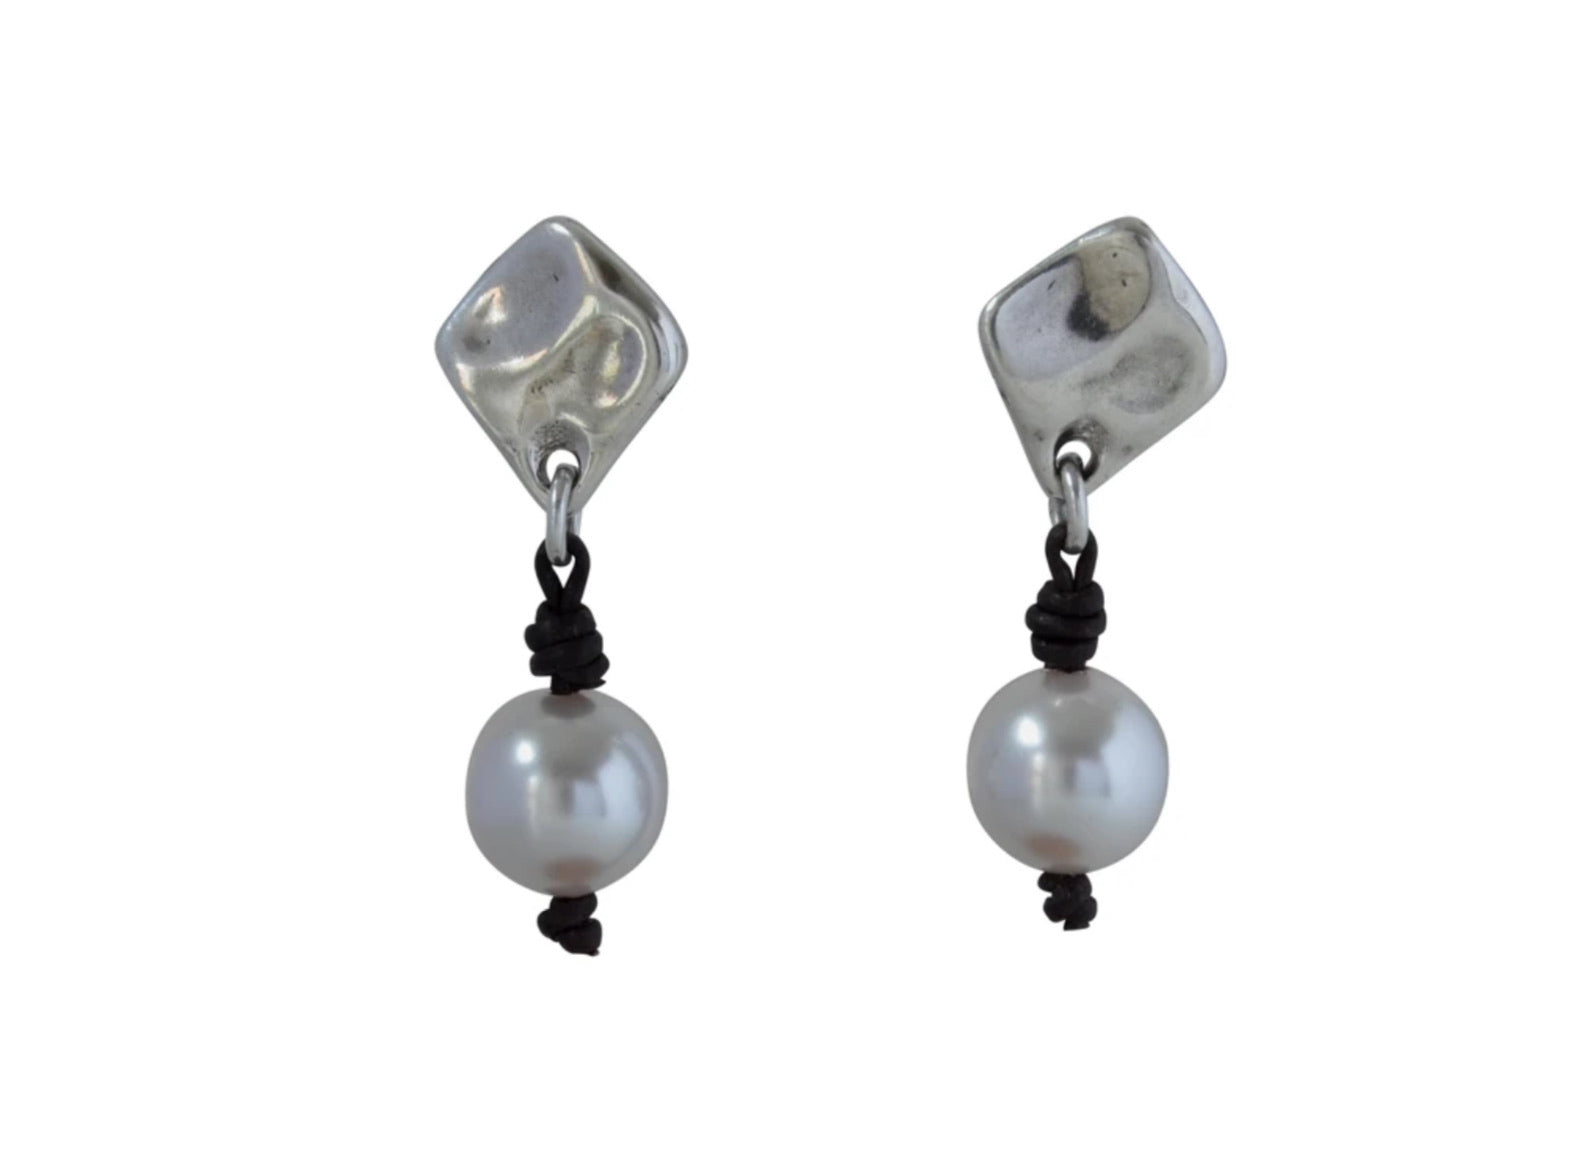 Vidda Oyster Earrings